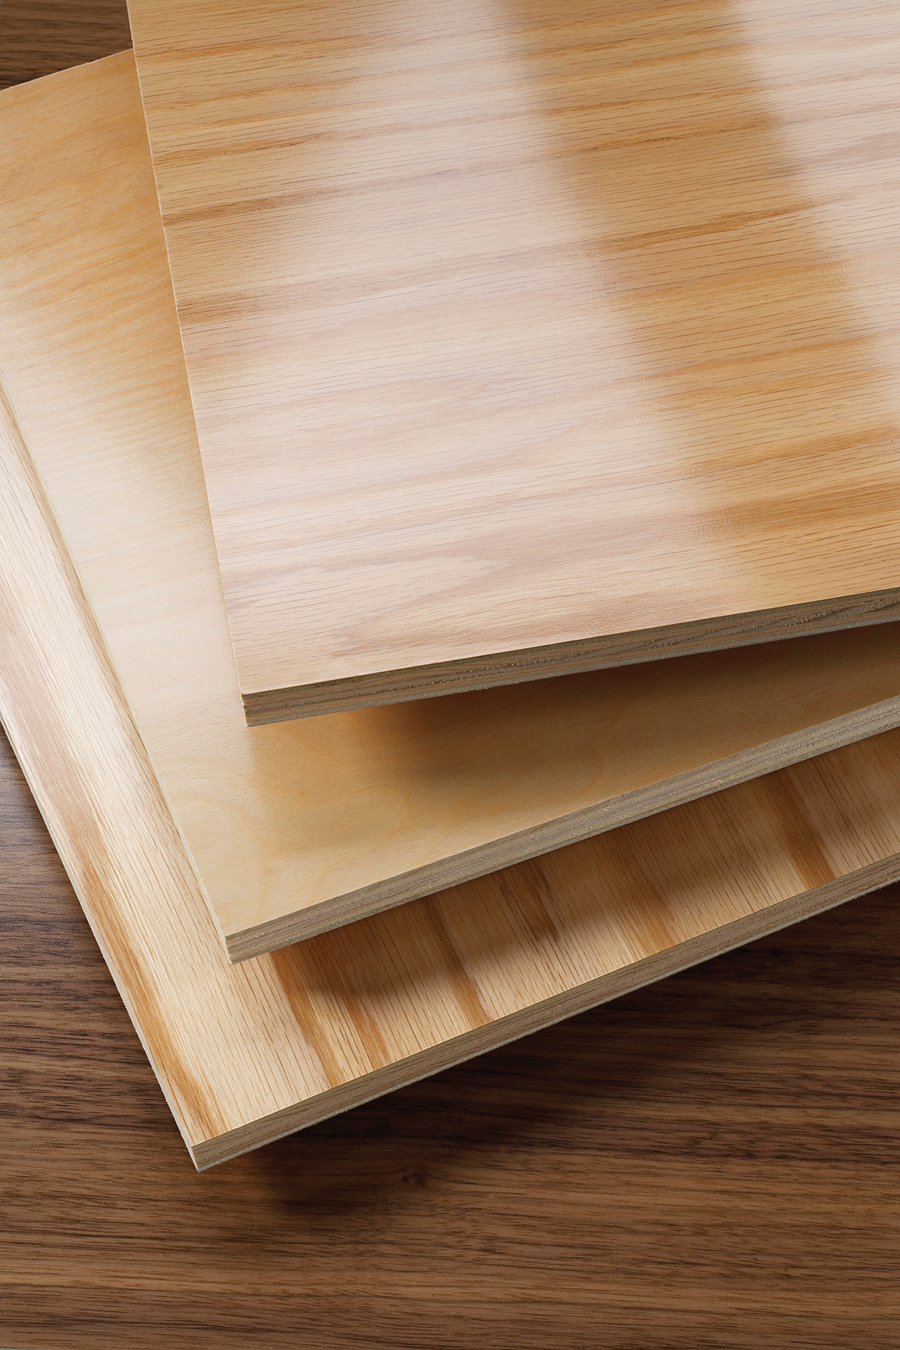 Website Online Europly Plus™ And Mpx® Hardwood Plywood Panels From